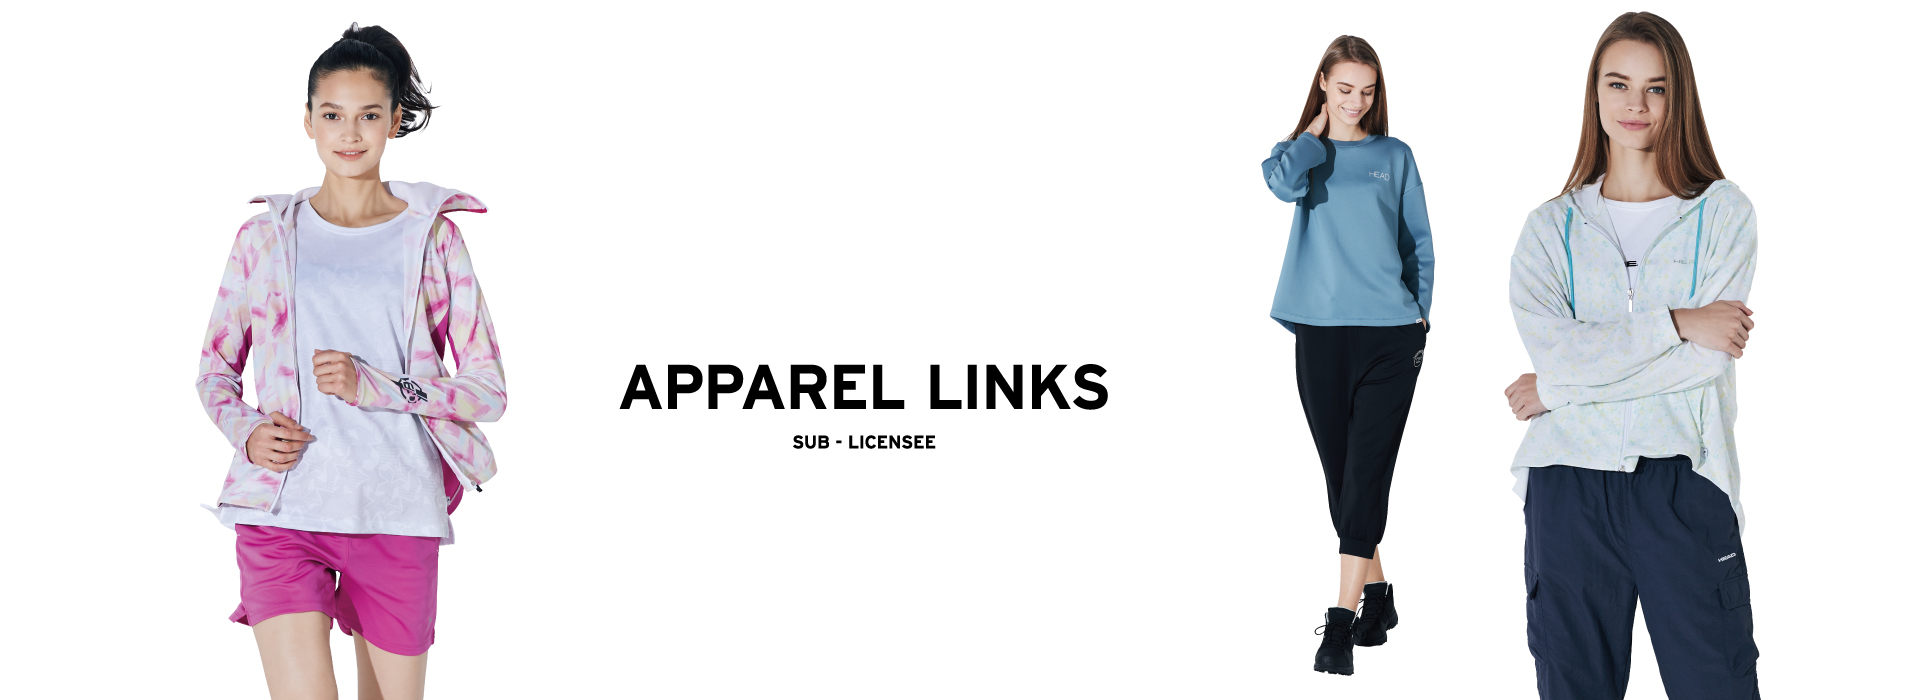 APPAREL LINKS